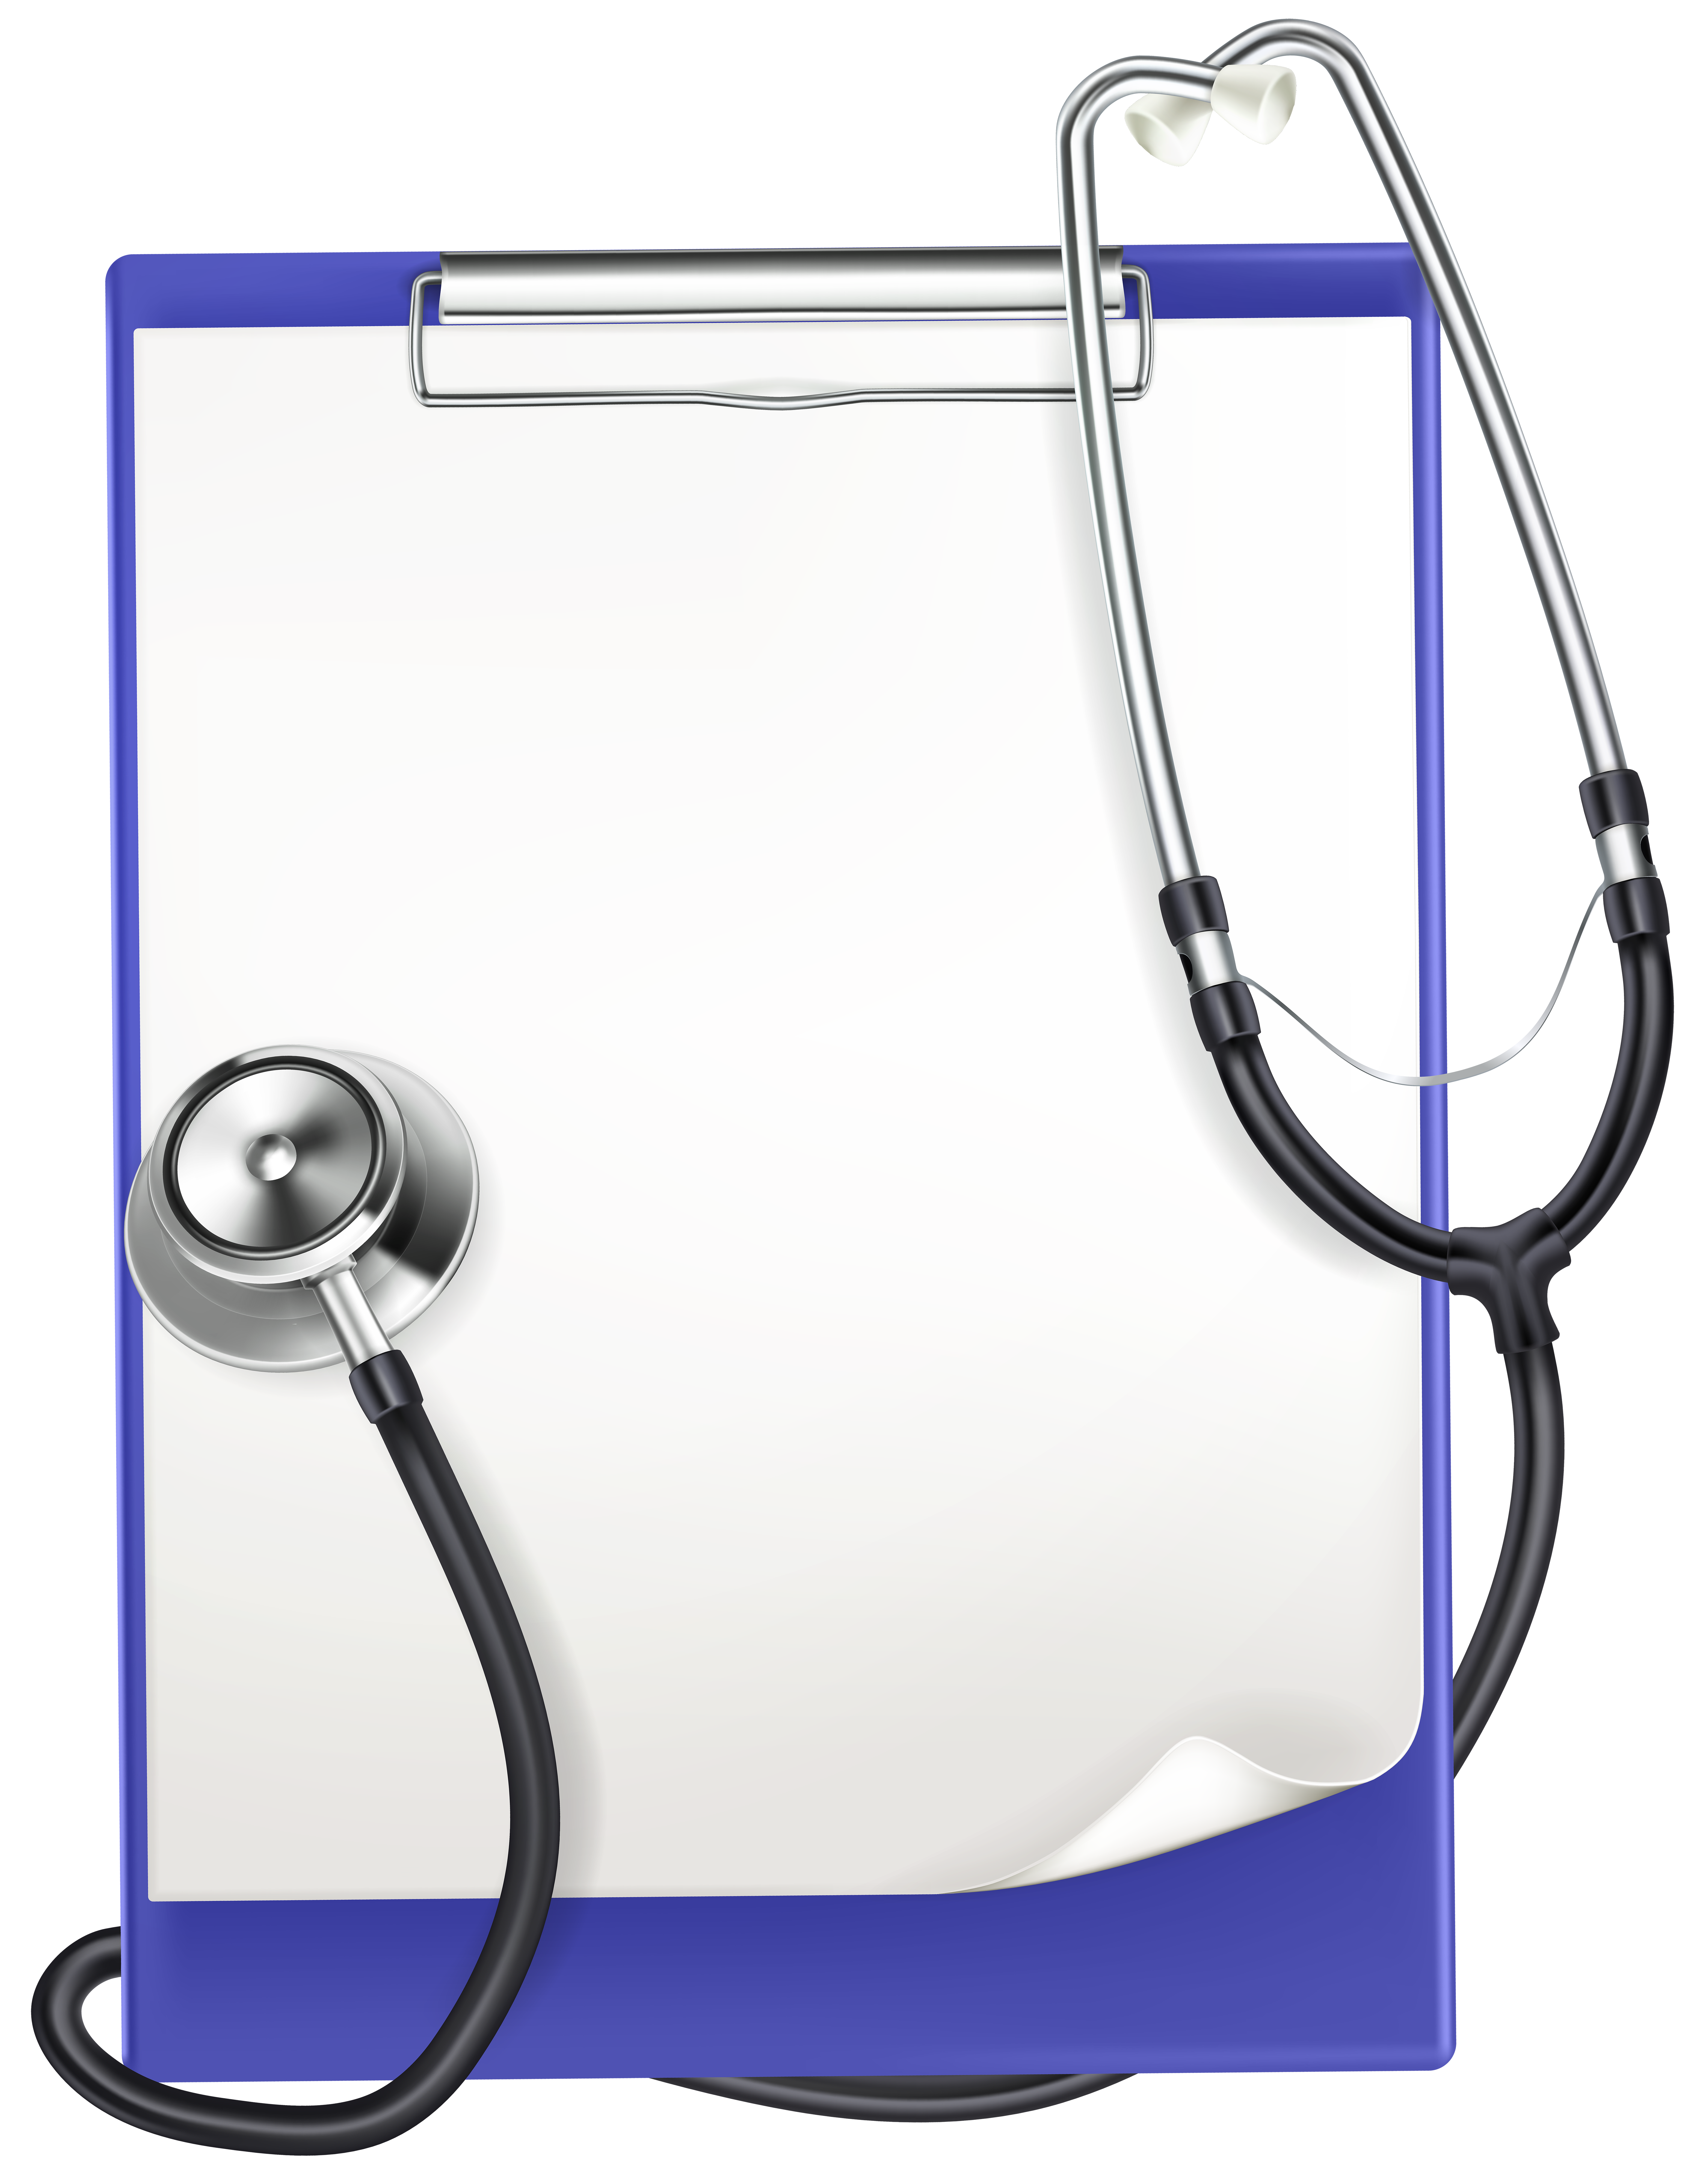 Clipboard clipart red. With medical headphones png